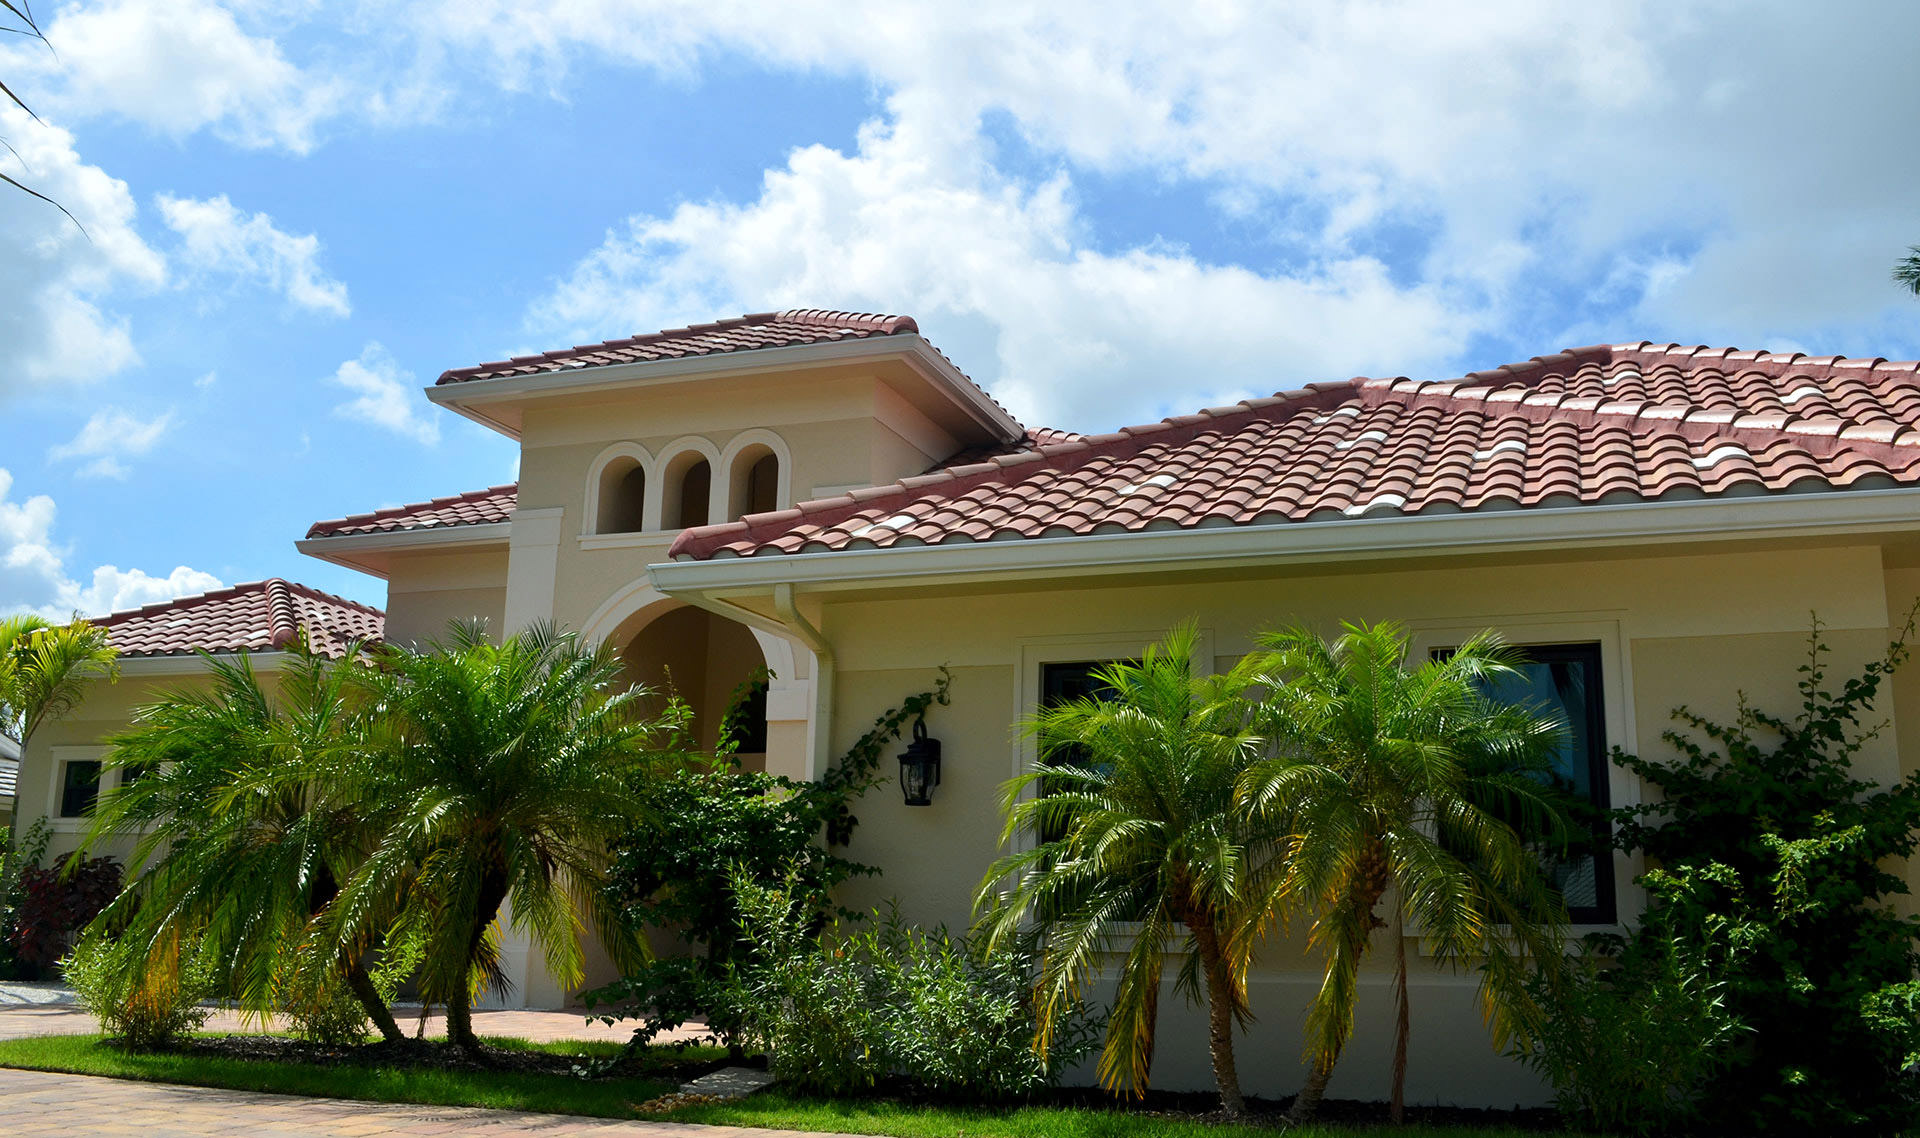 Tile Roofers - Florida